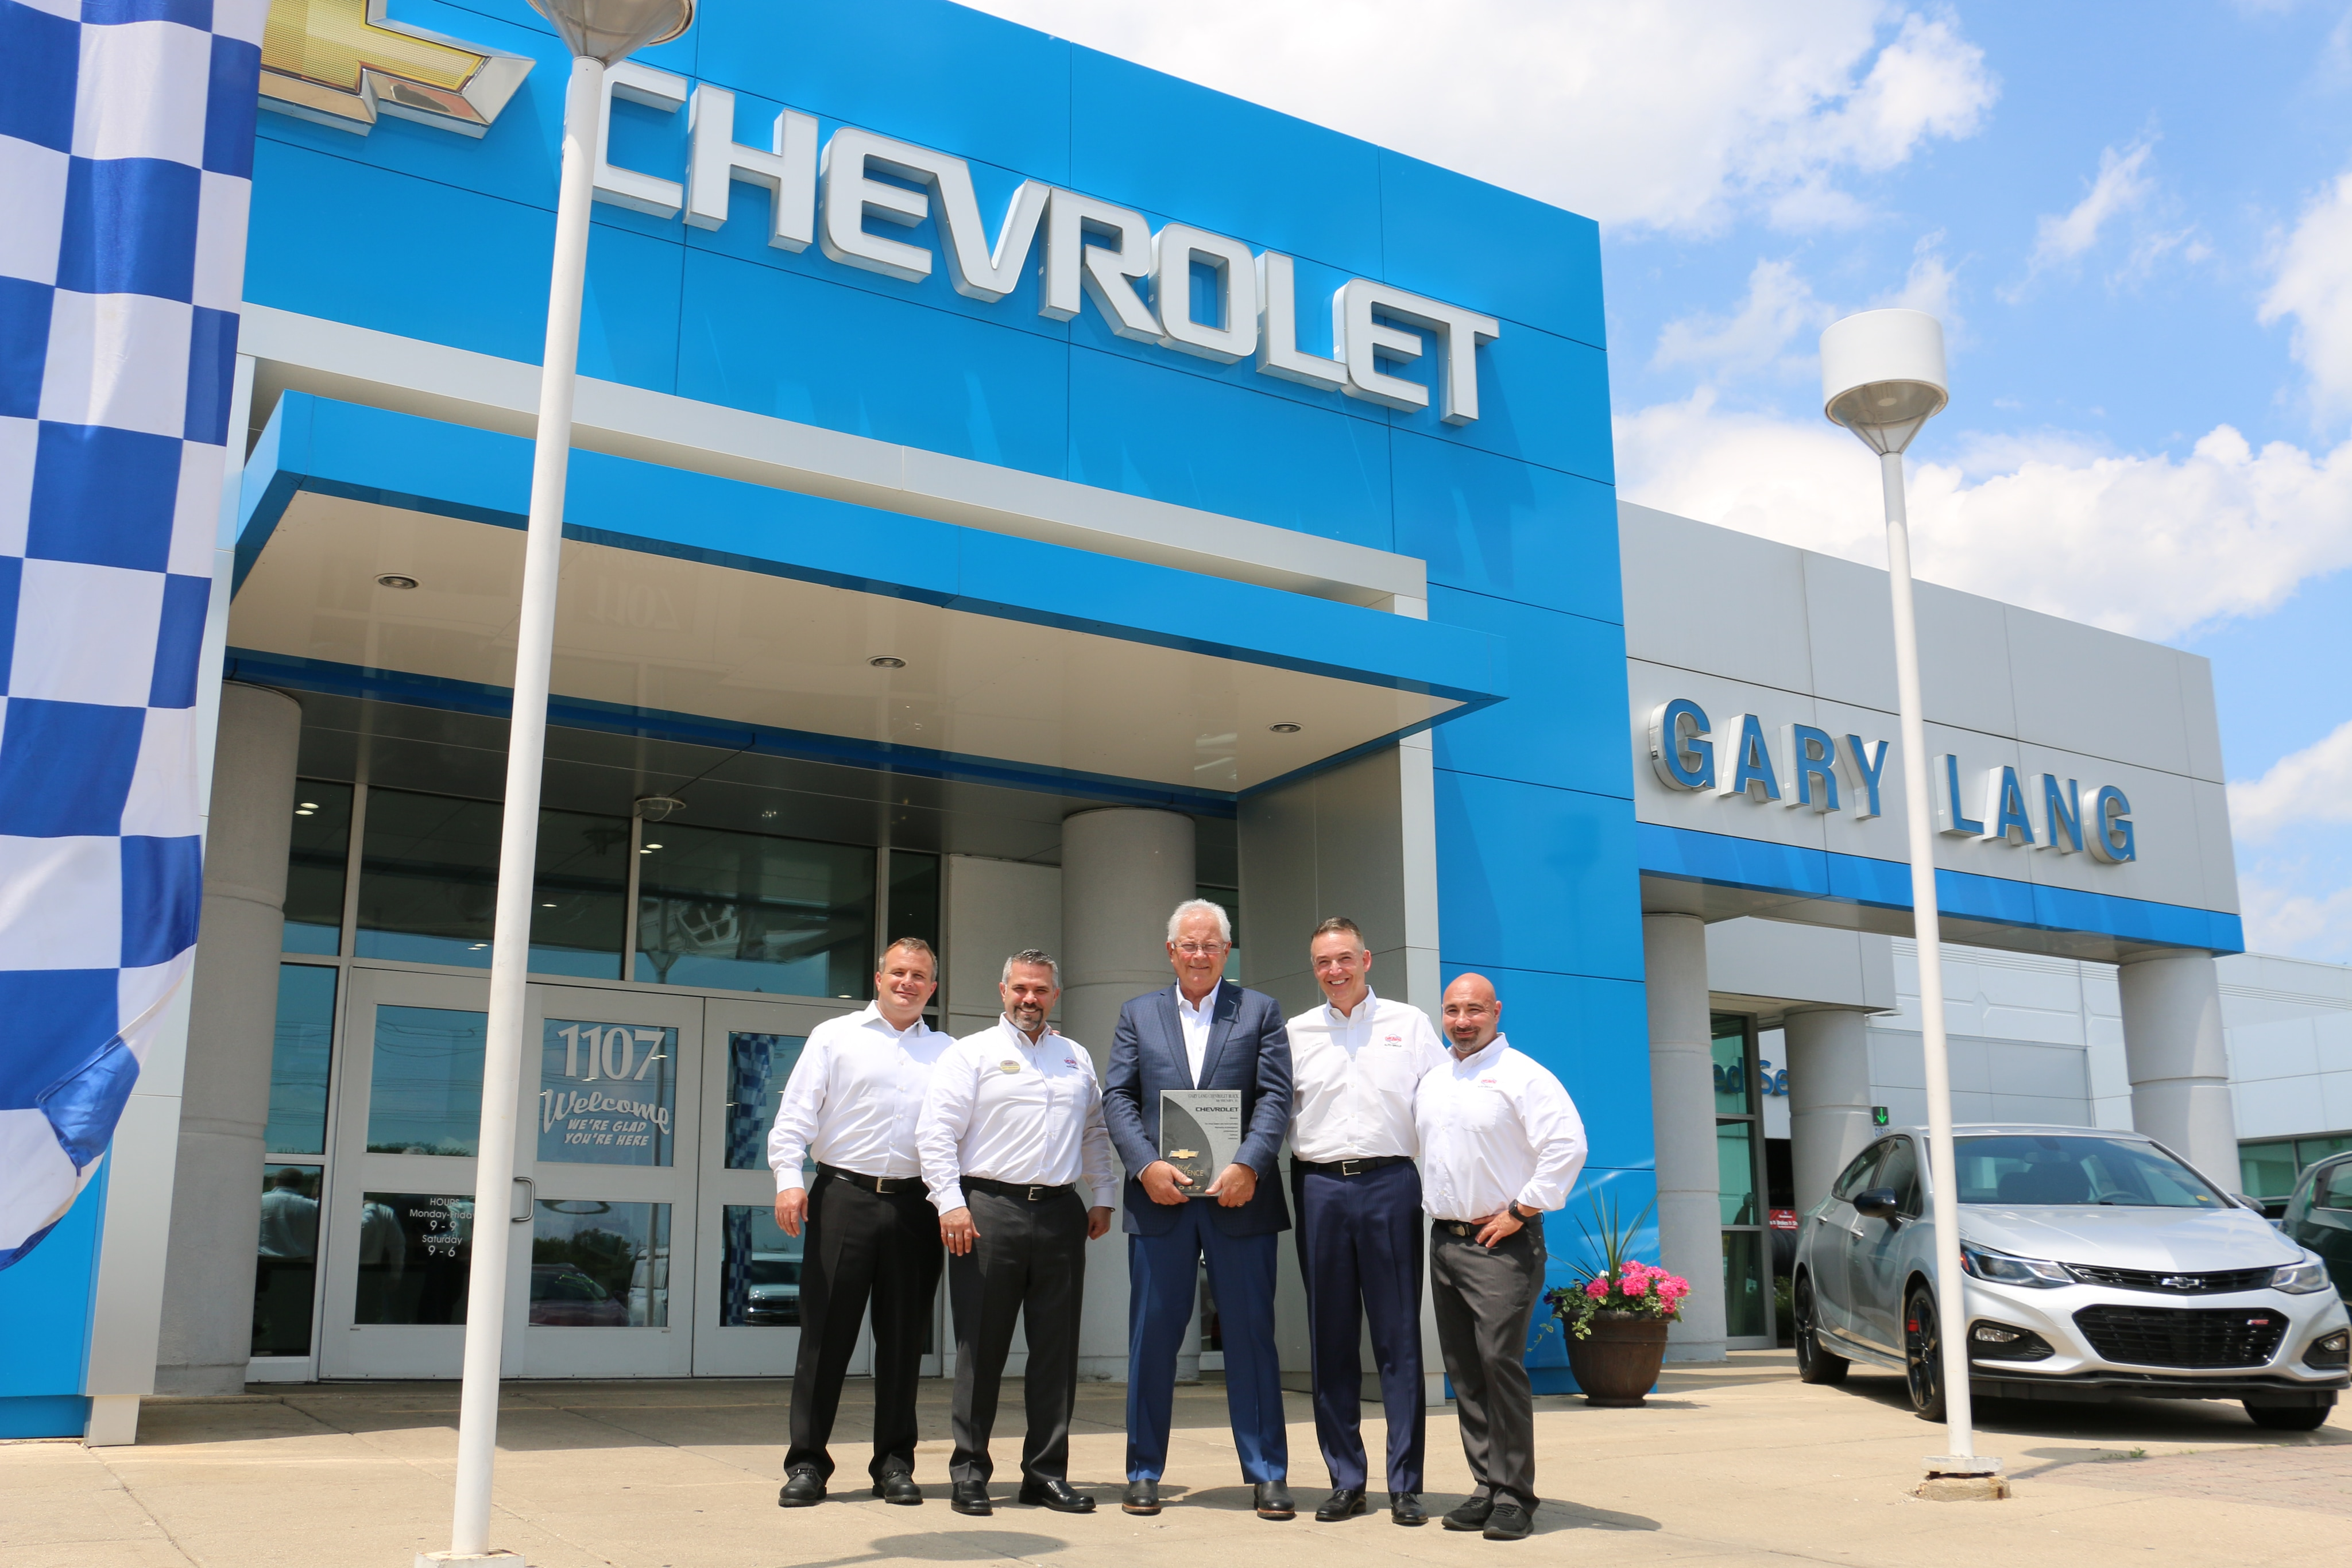 Gary Lang Chevrolet Mark of Excellence Award | McHenry, IL